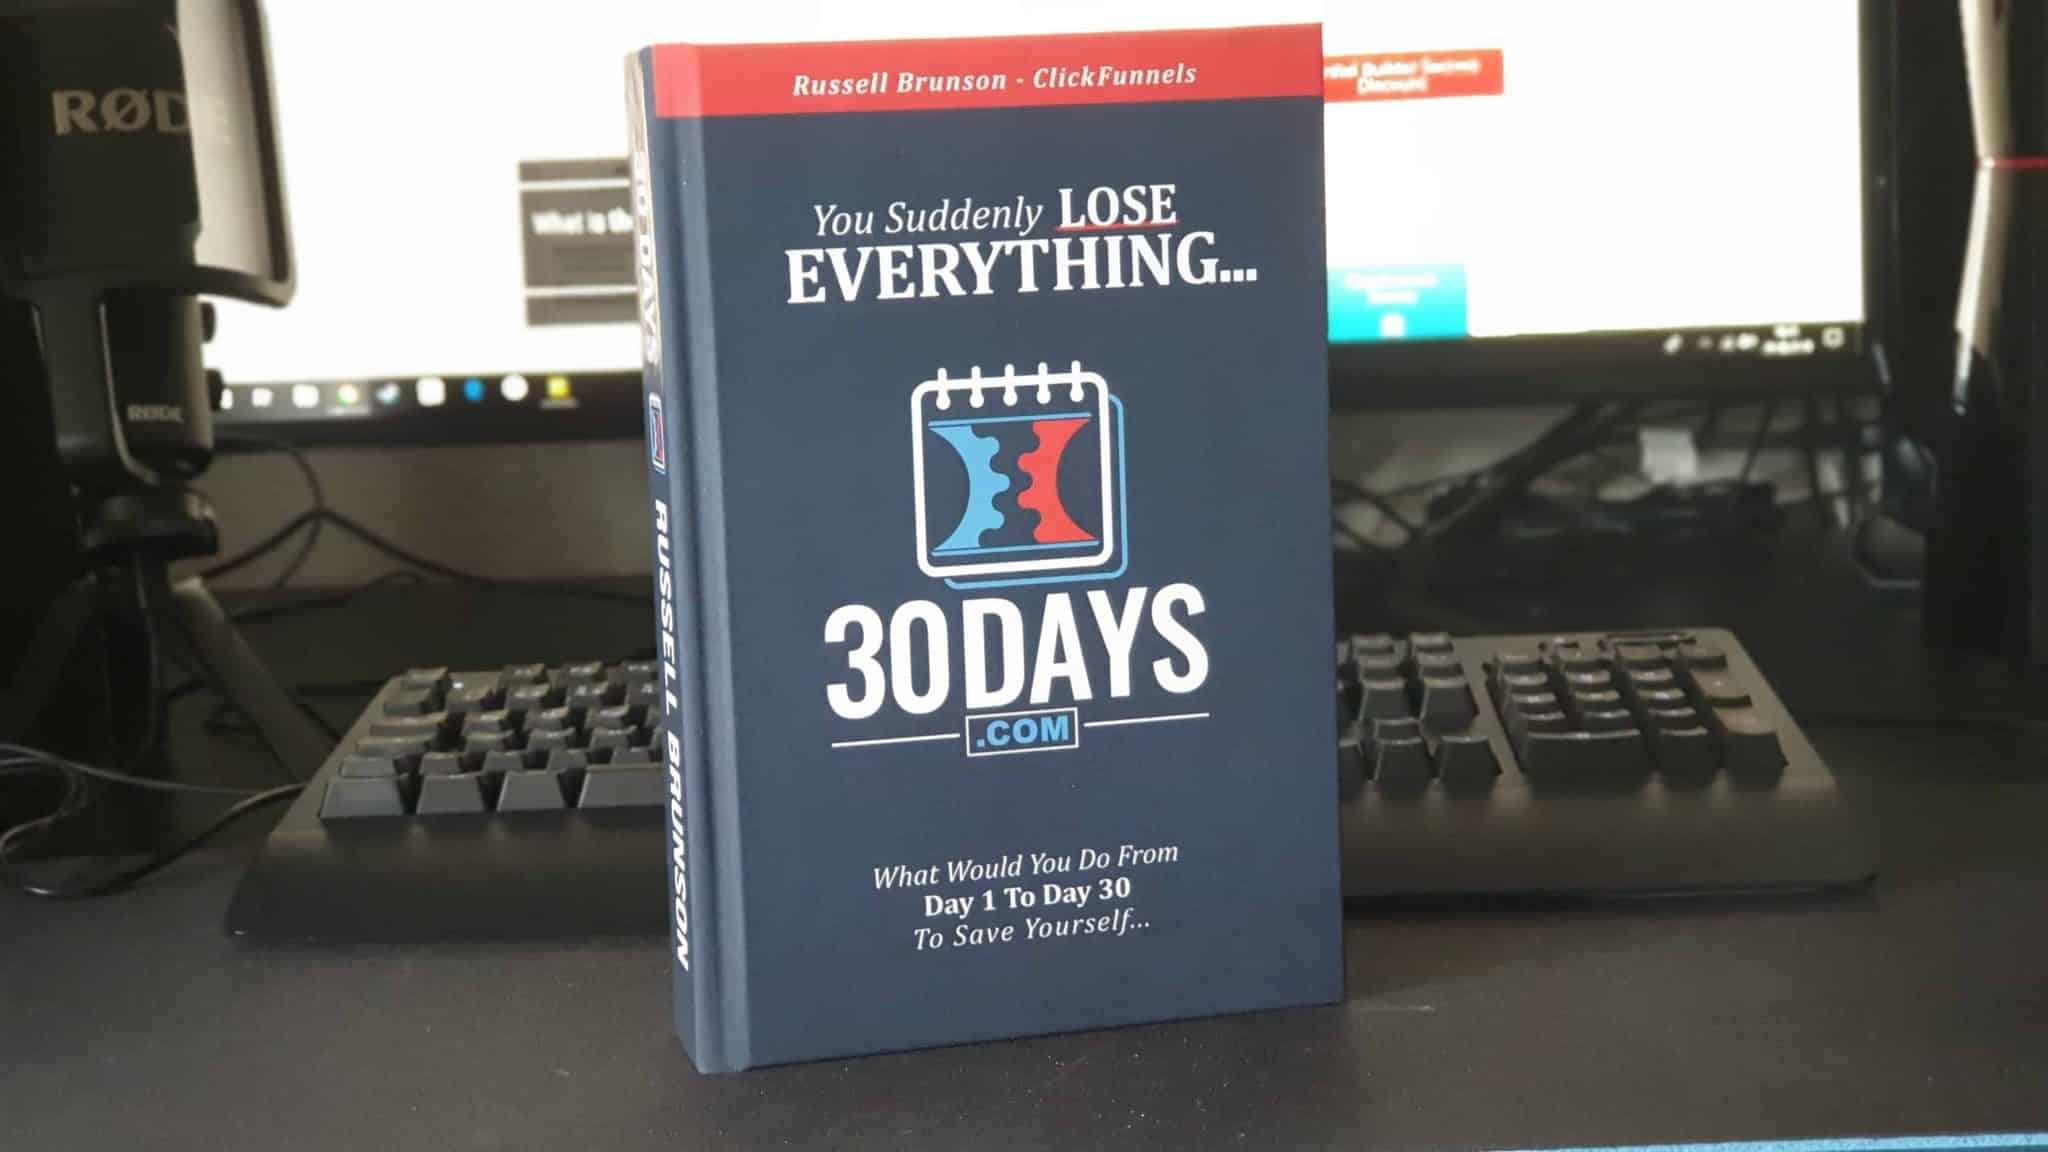 Clickfunnels 30 Day Challenge Book